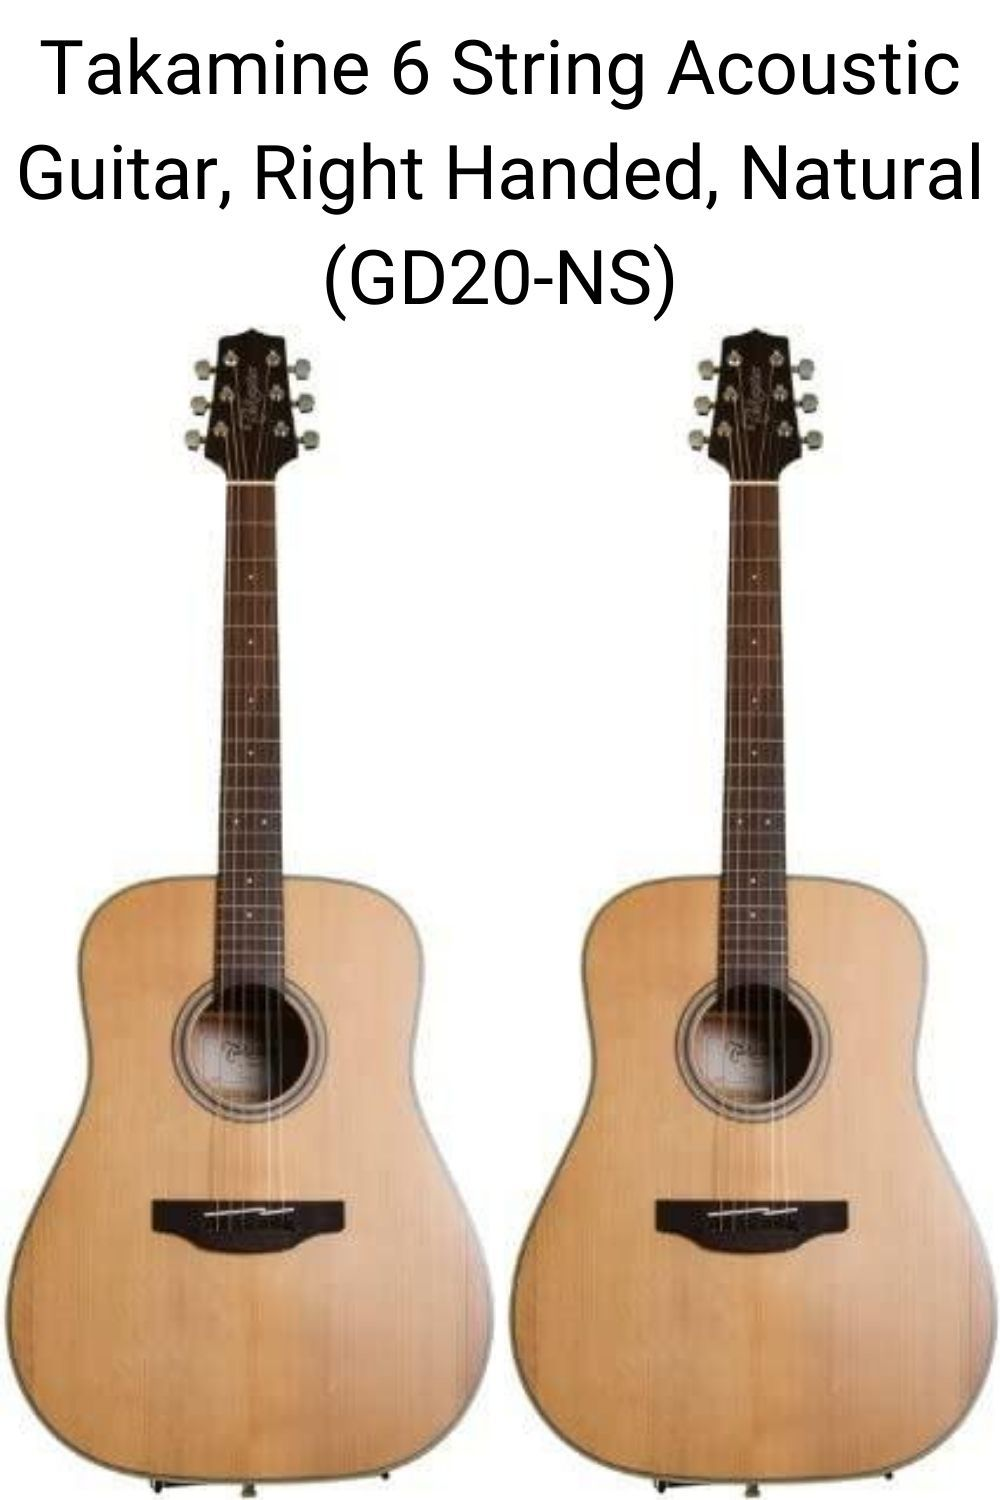 Neck Radius The Acoustic Guitar Forum Acoustic Guitar Guitar Radii